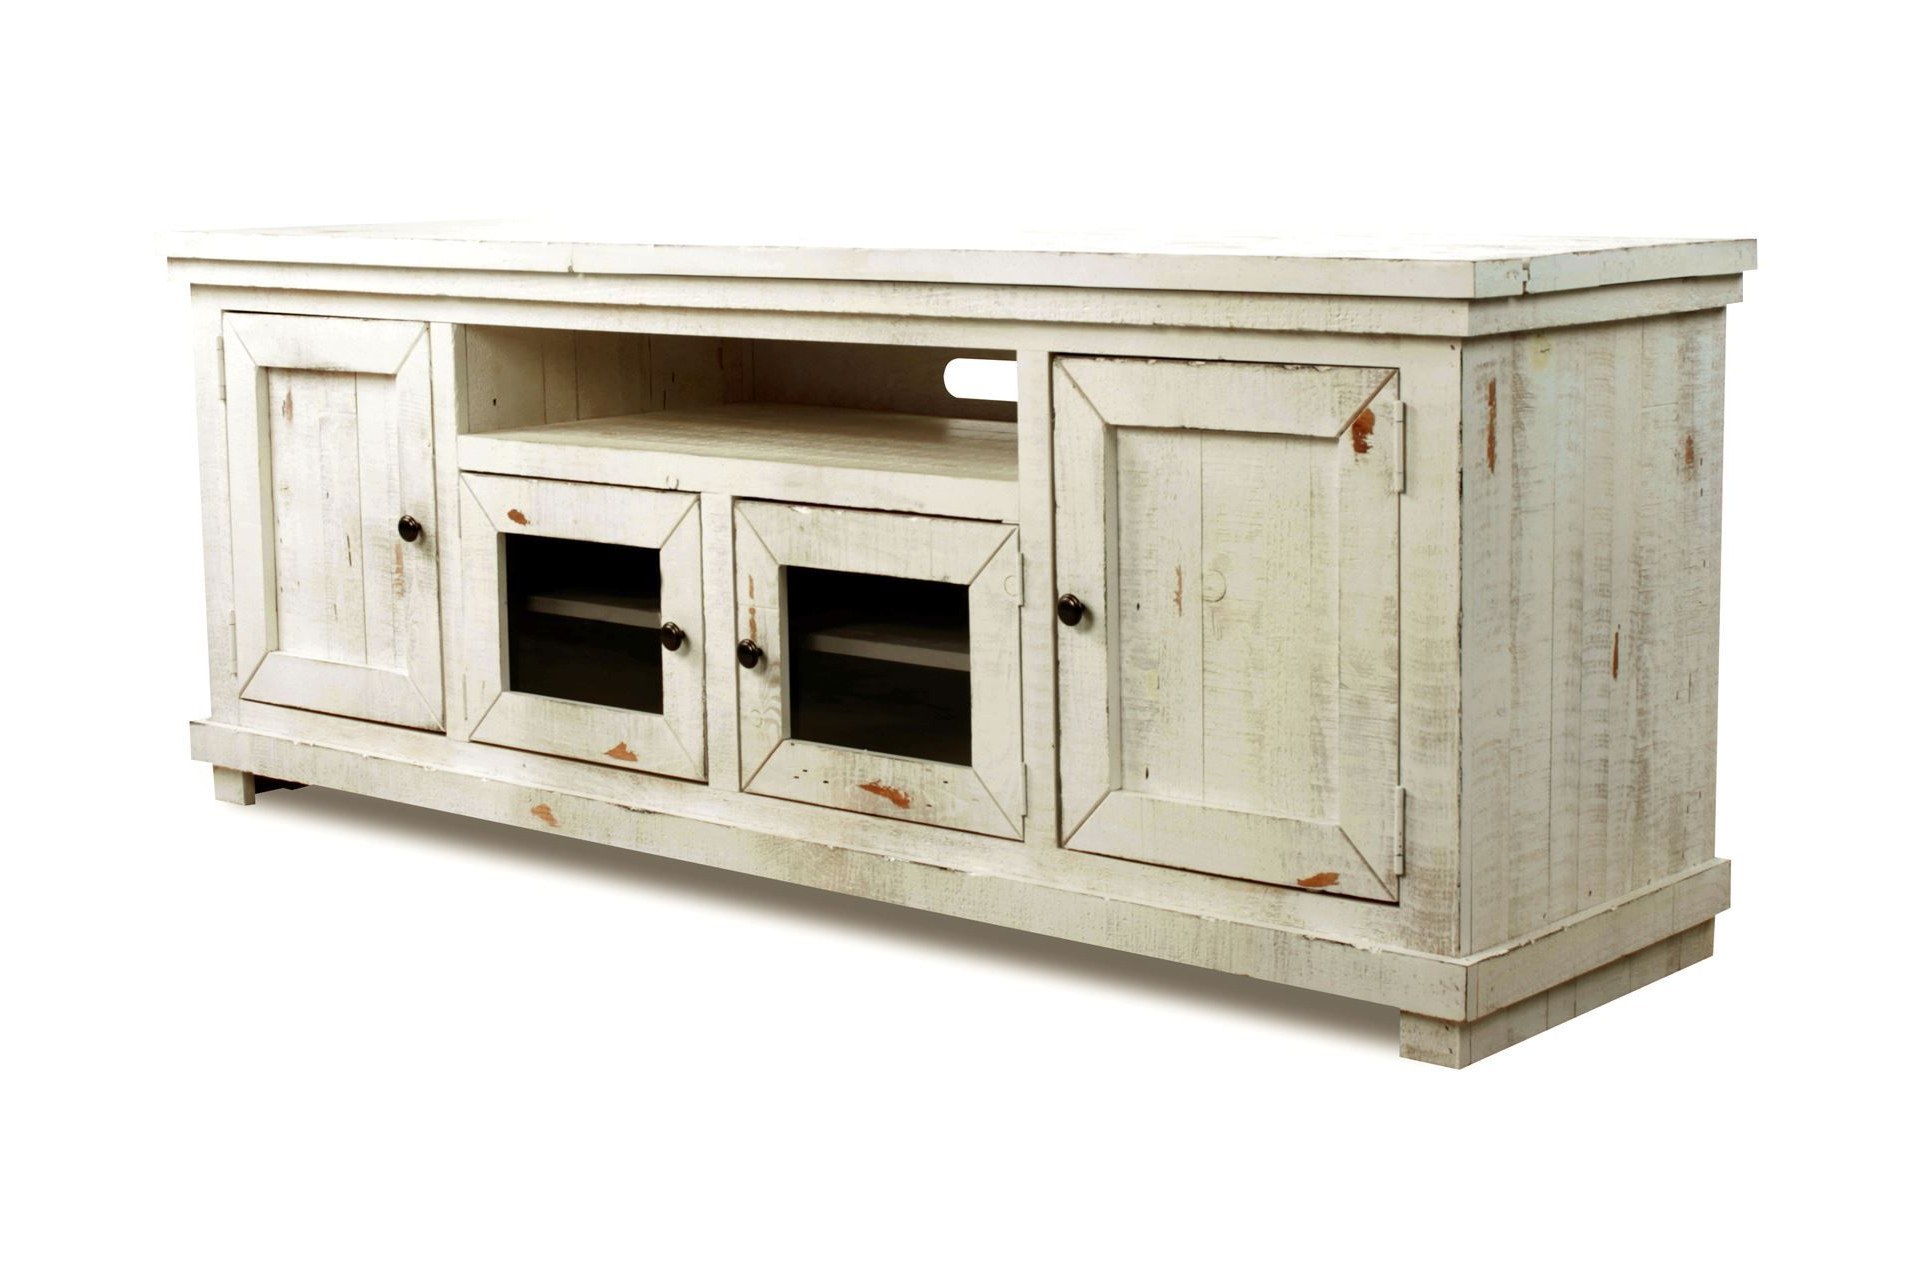 Sinclair White 74 Inch Tv Stand | Furniture Collection | Living Room Throughout Ducar 74 Inch Tv Stands (Gallery 9 of 20)